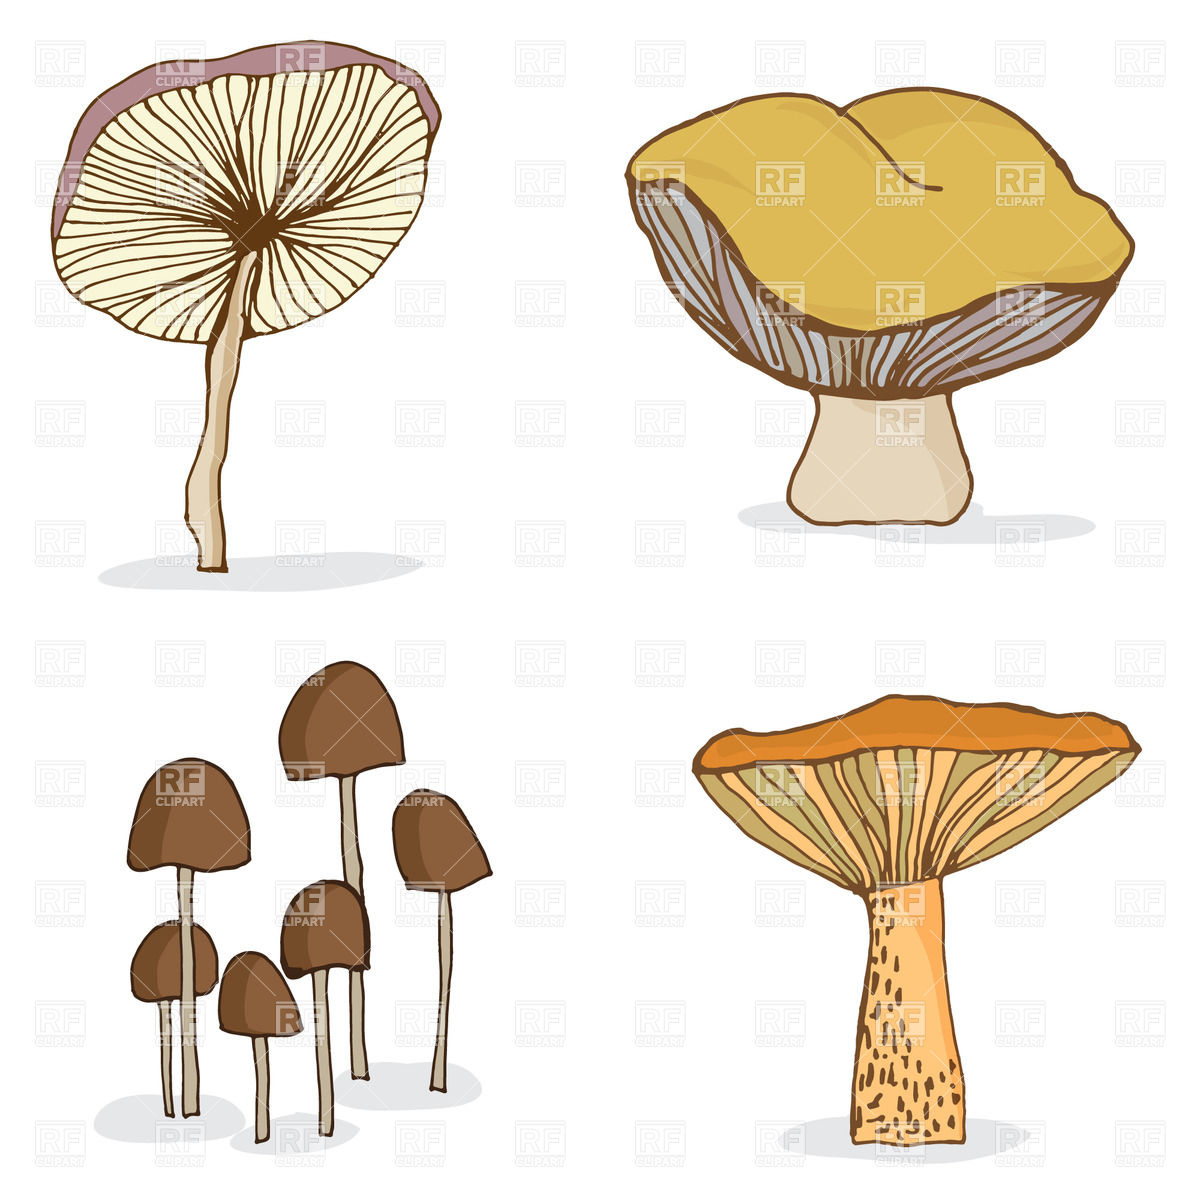 Set of cartoon forest mushrooms Vector Image #39056.